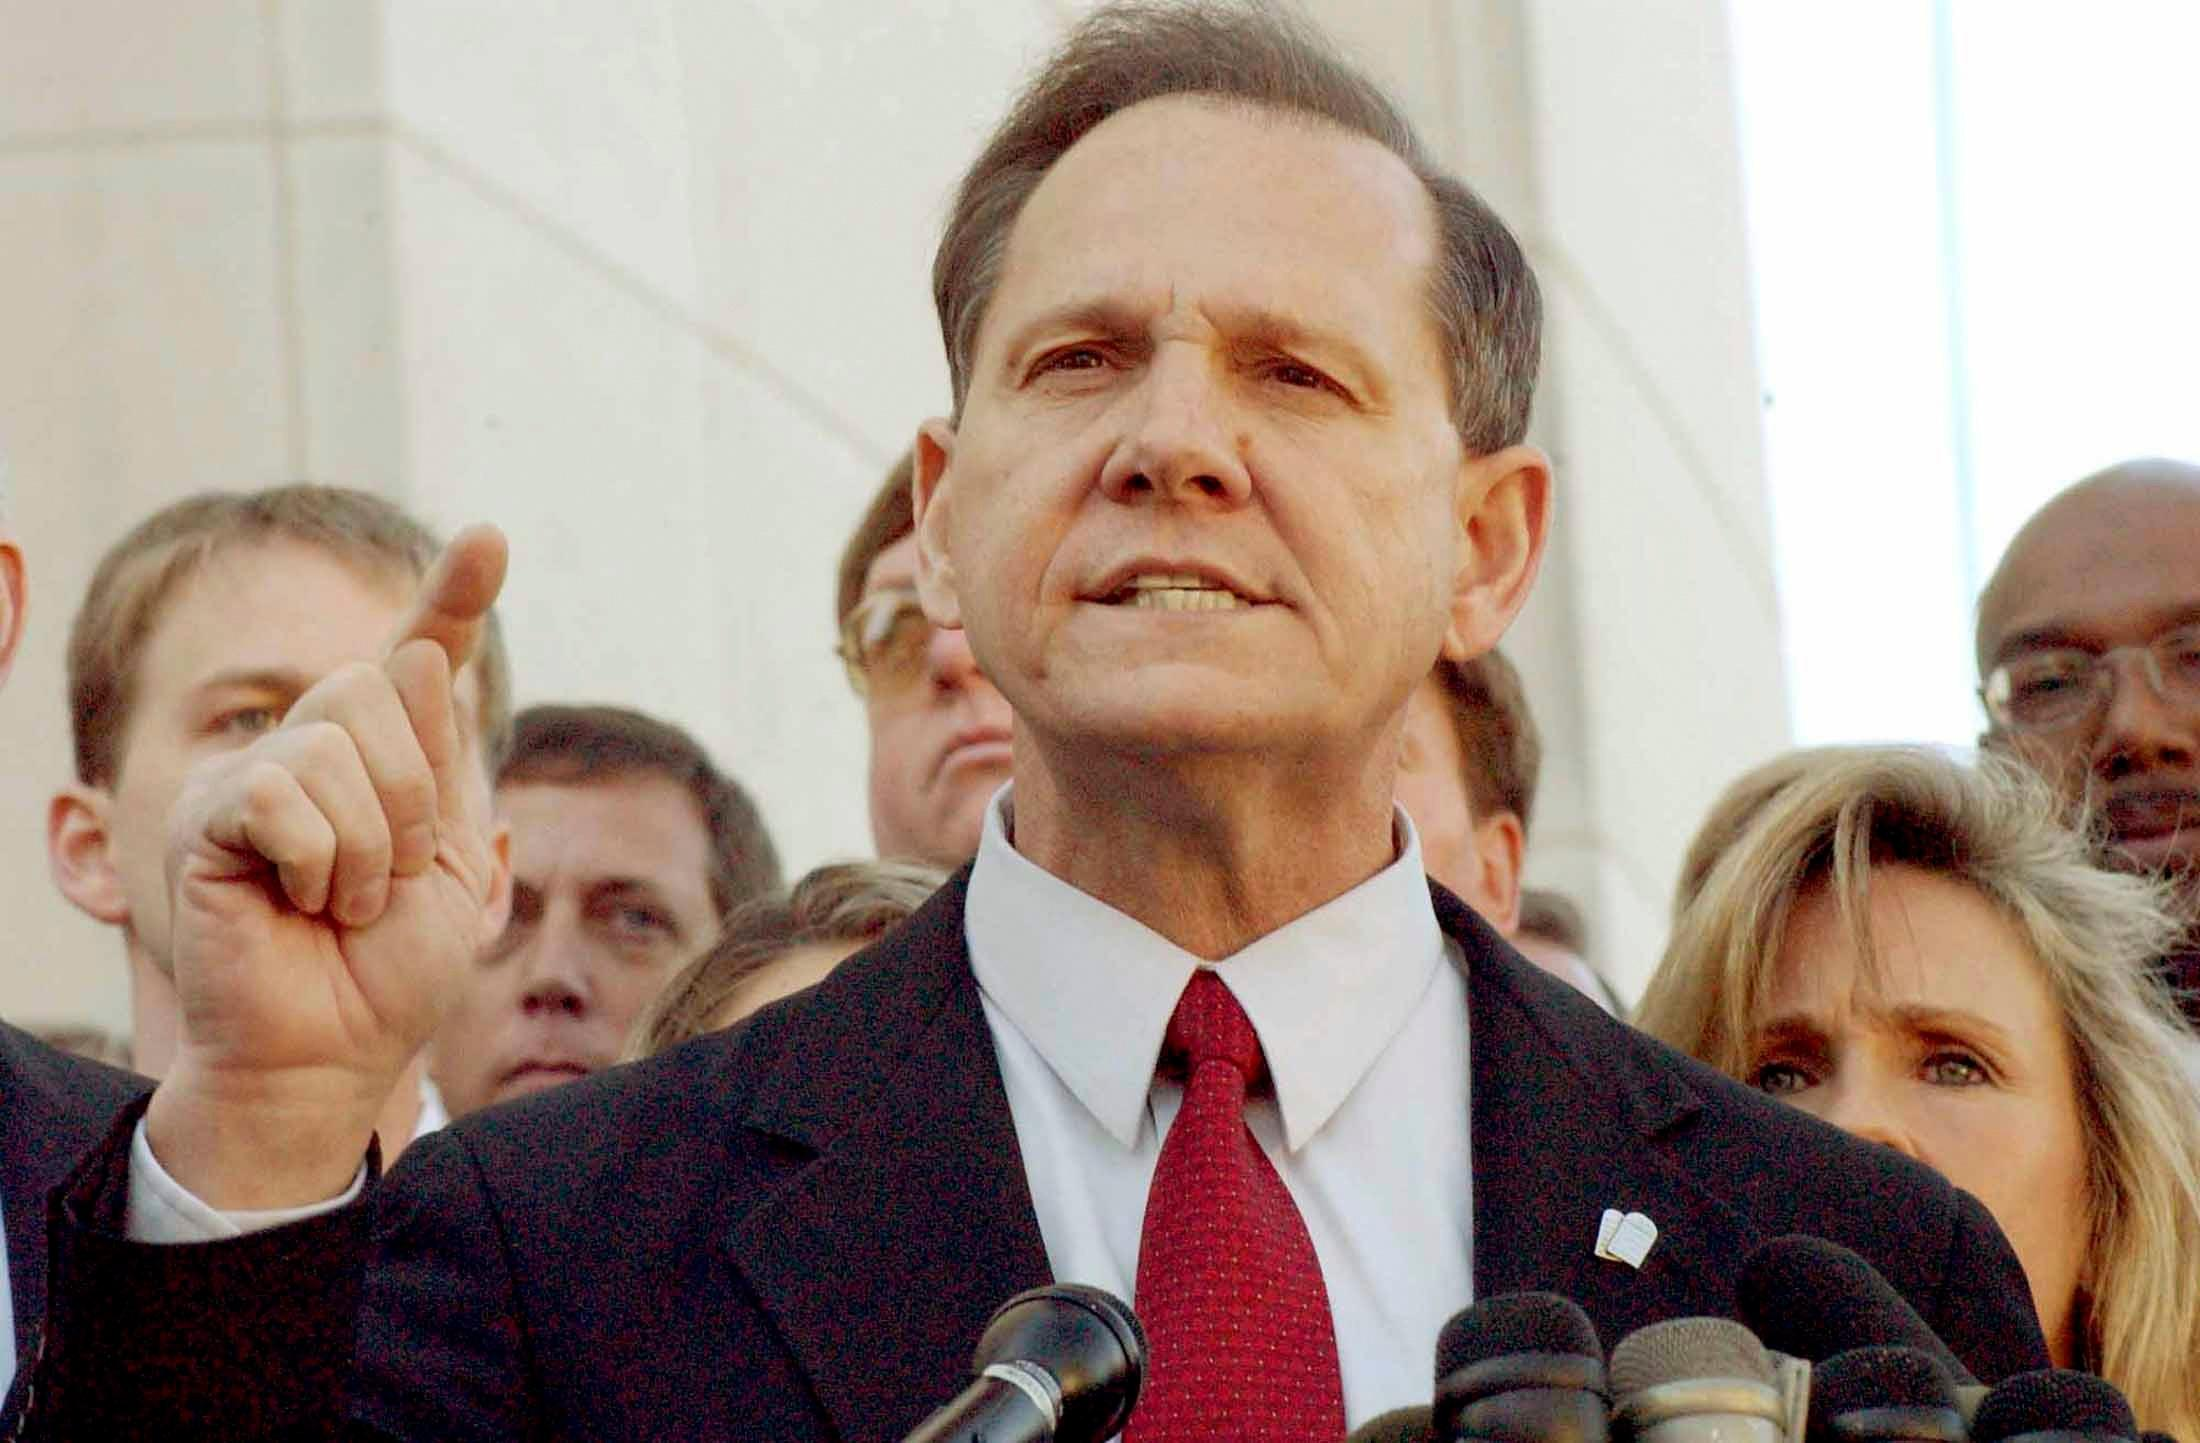 News Wrap: Alabama justice banned over gay marriage licenses